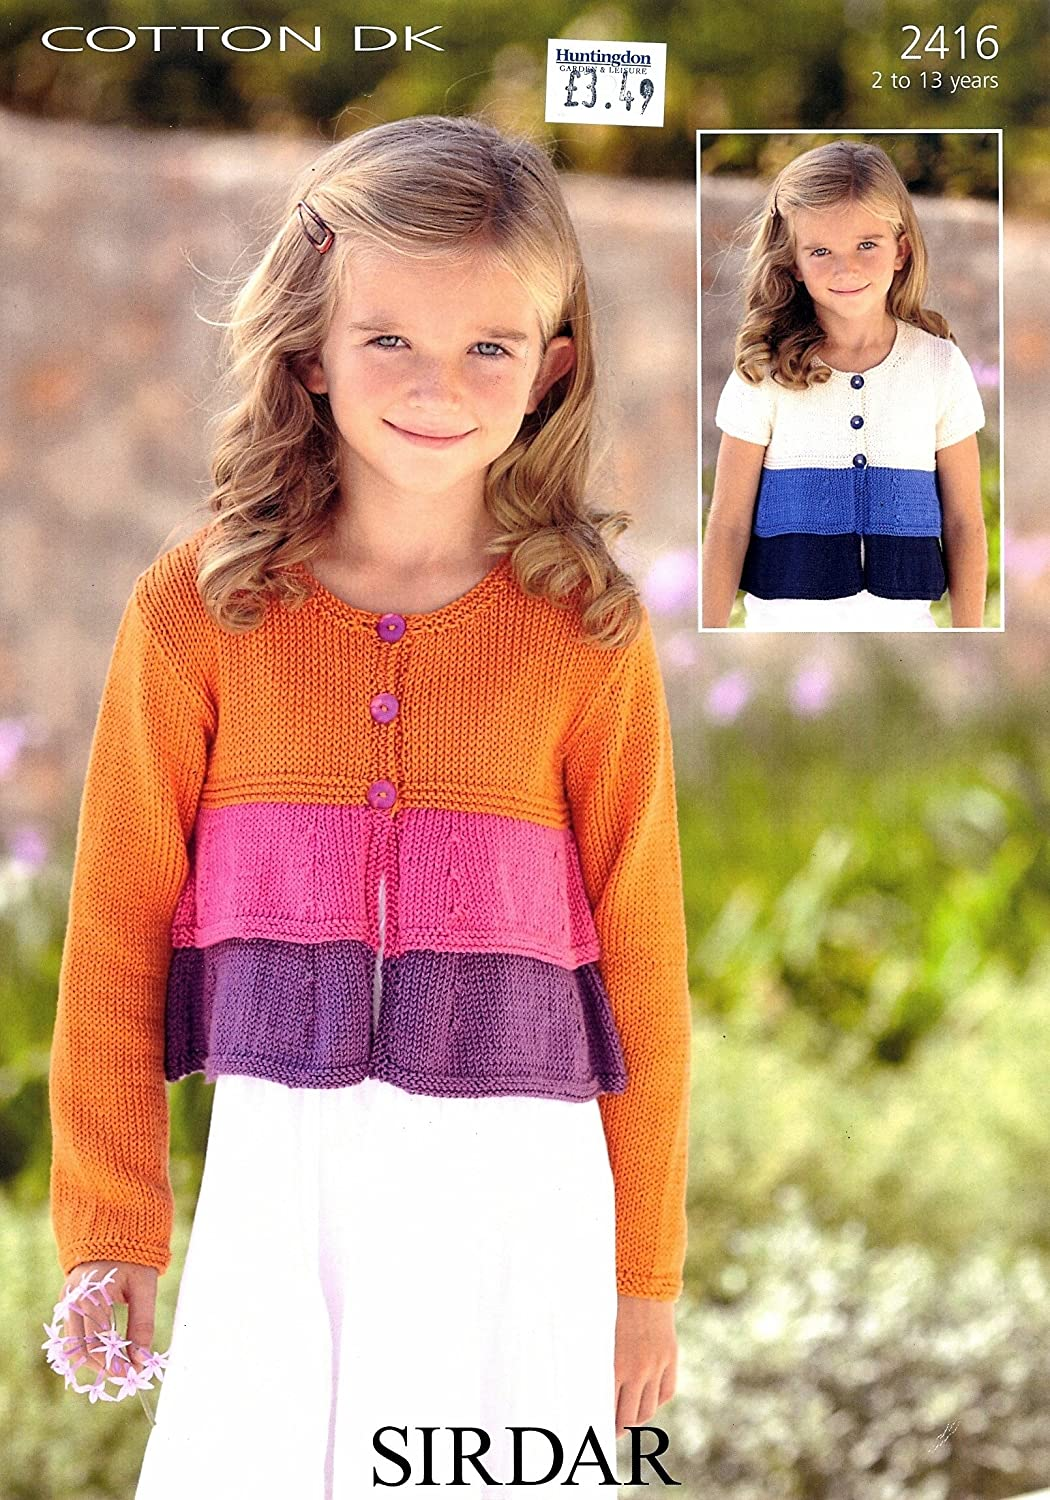 Sirdar cotton dk knitting pattern 2416 girls cardigans size 2 13 sirdar cotton dk knitting pattern 2416 girls cardigans size 2 13 years56 81cm 22 32inch amazon kitchen home bankloansurffo Image collections